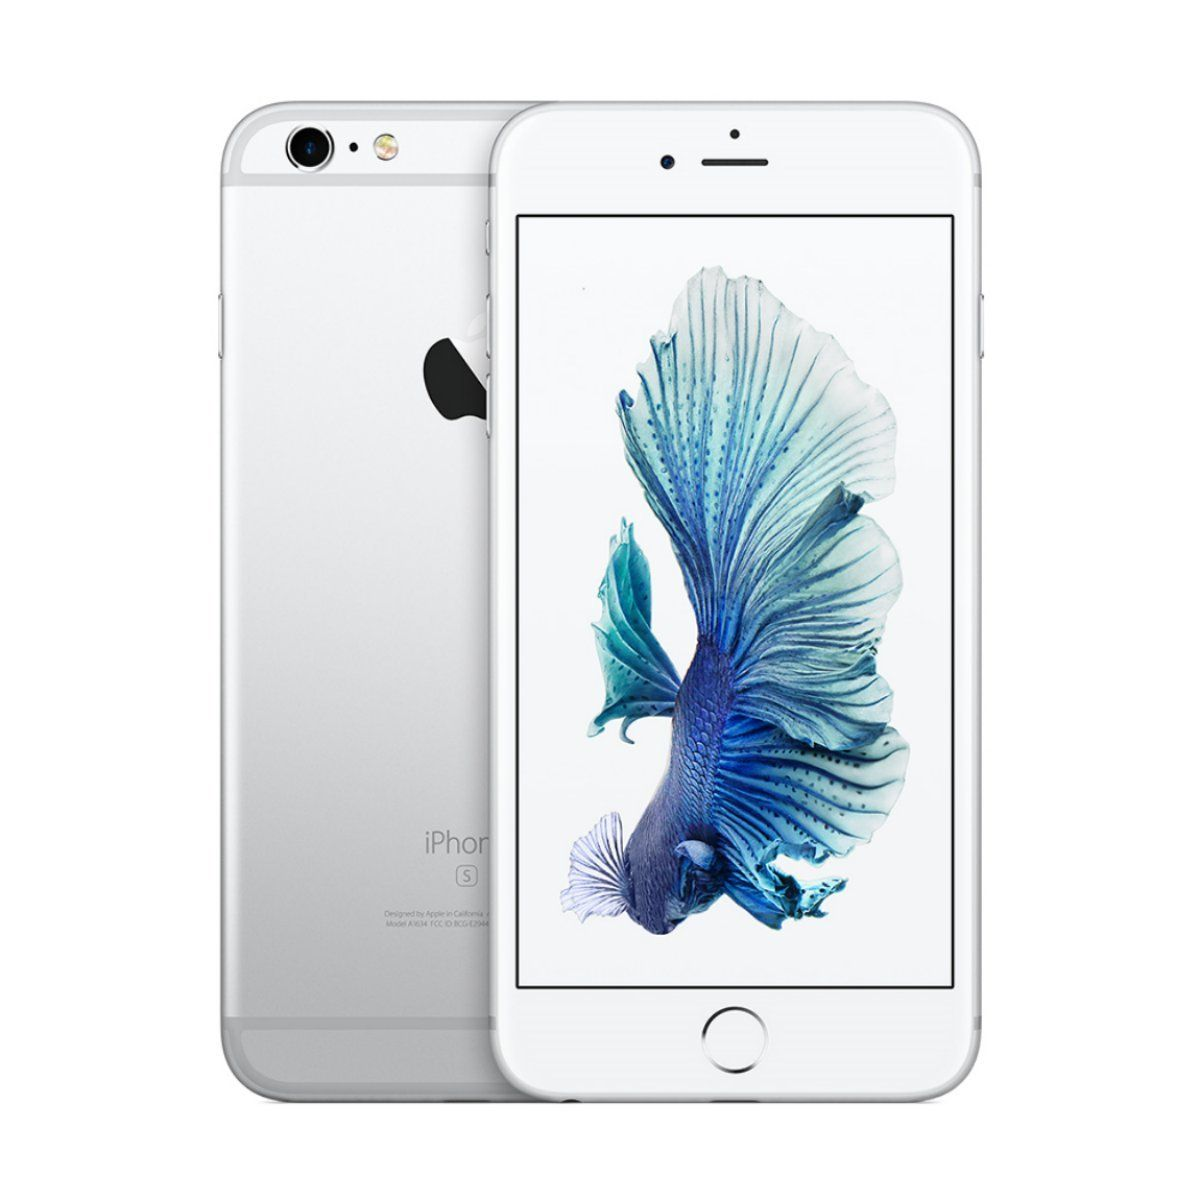 Apple iPhone 6S - Pre-owned (CPO)